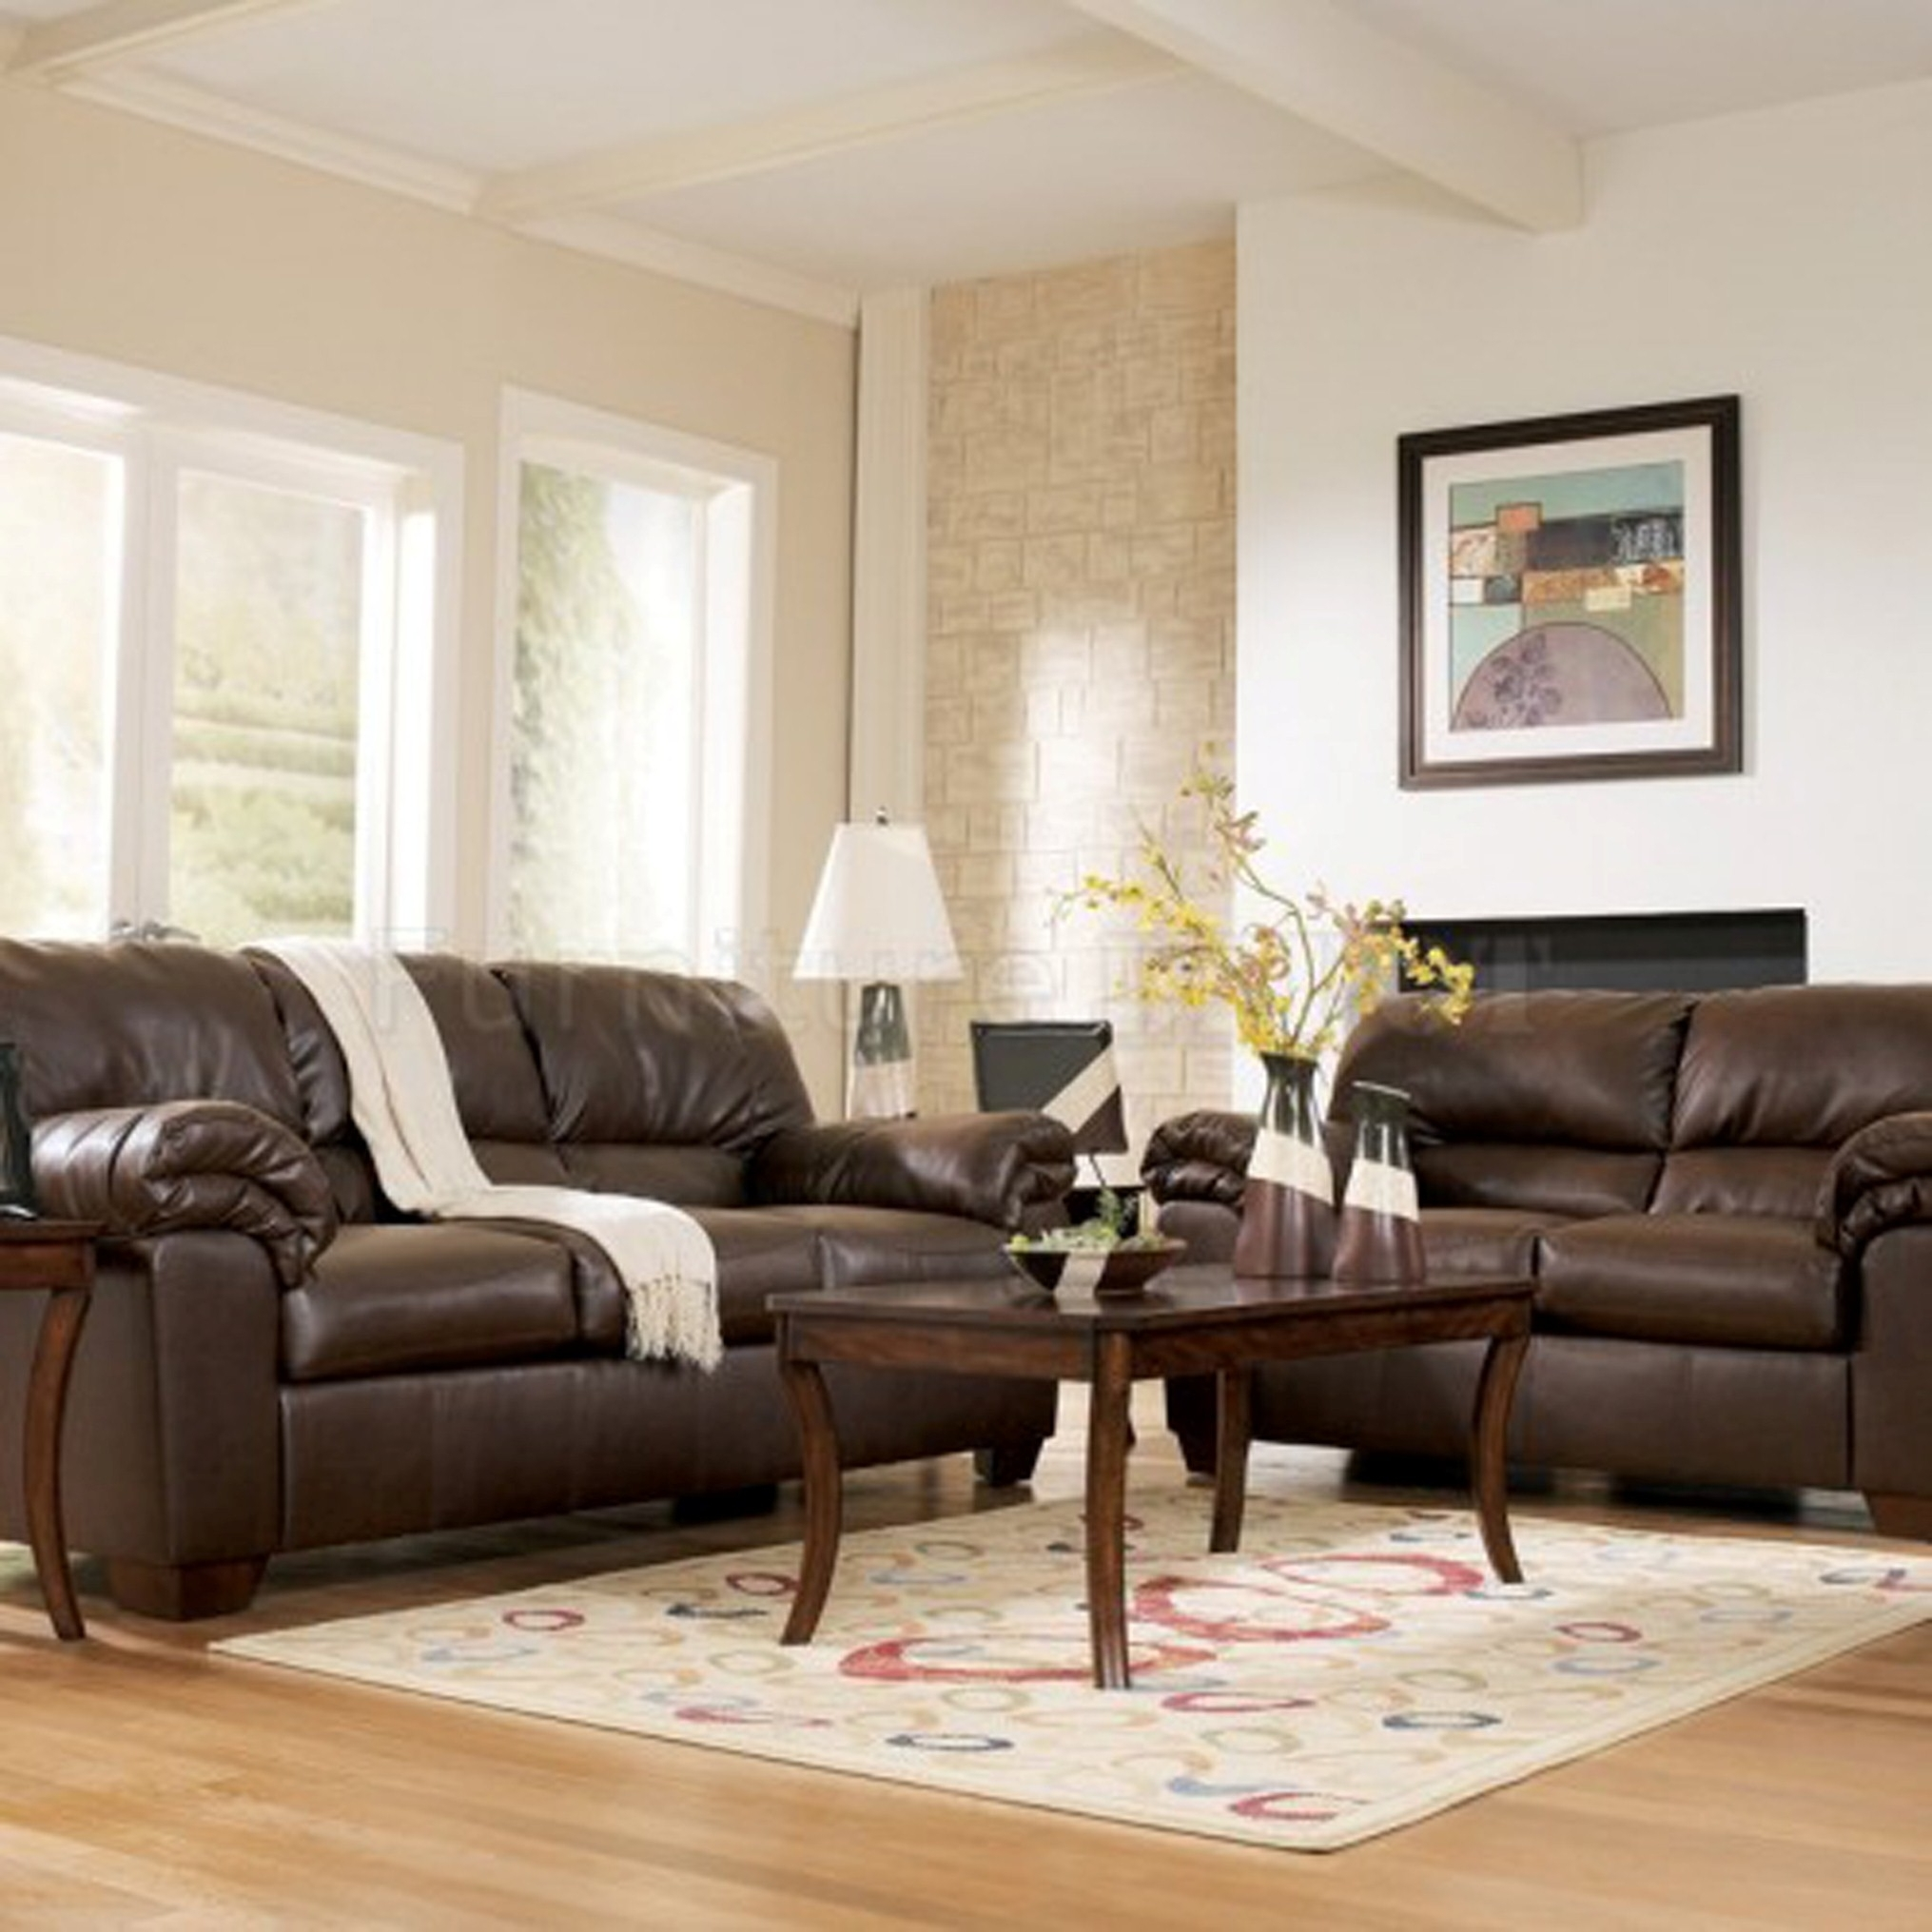 white sofa living room designs living room ideas brown leather sofa 20815